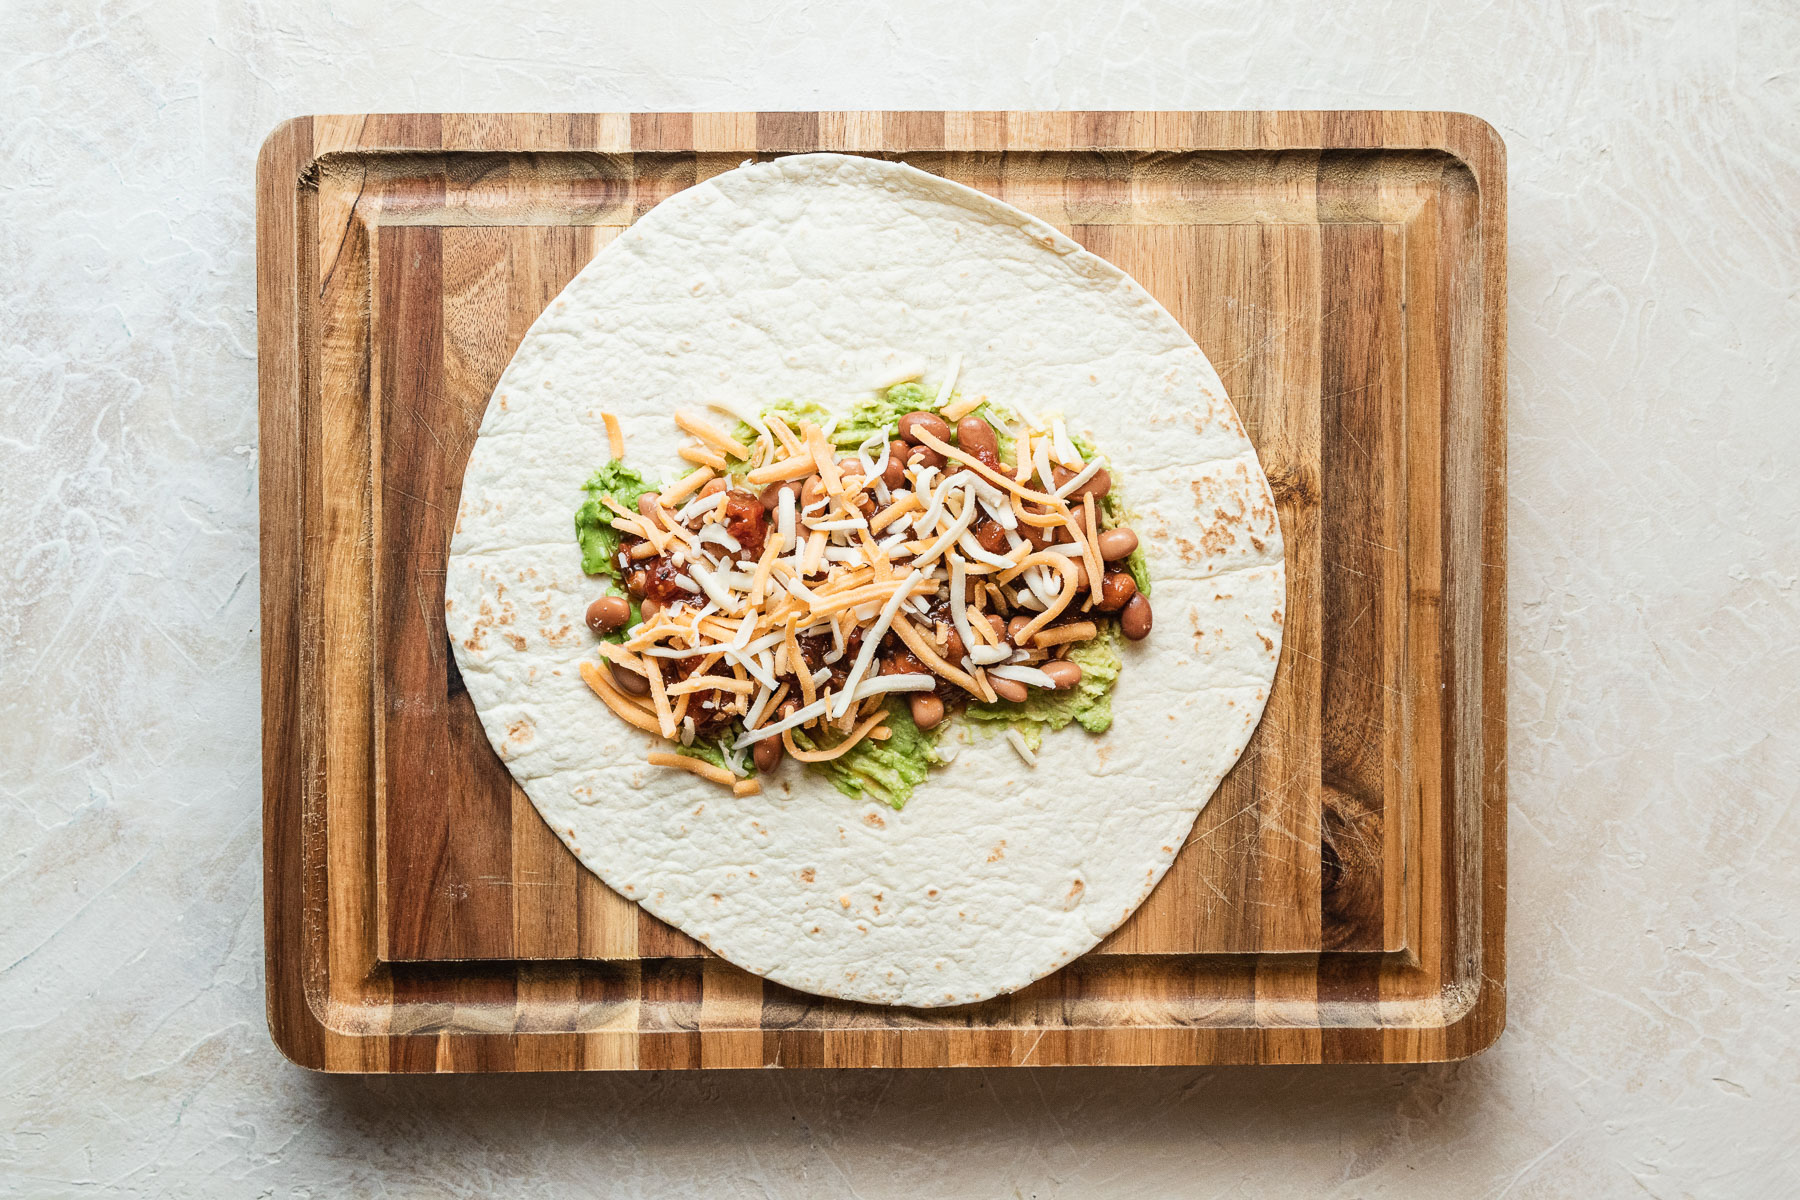 image of a grilled bean and cheese burrito open on a wood cutting board